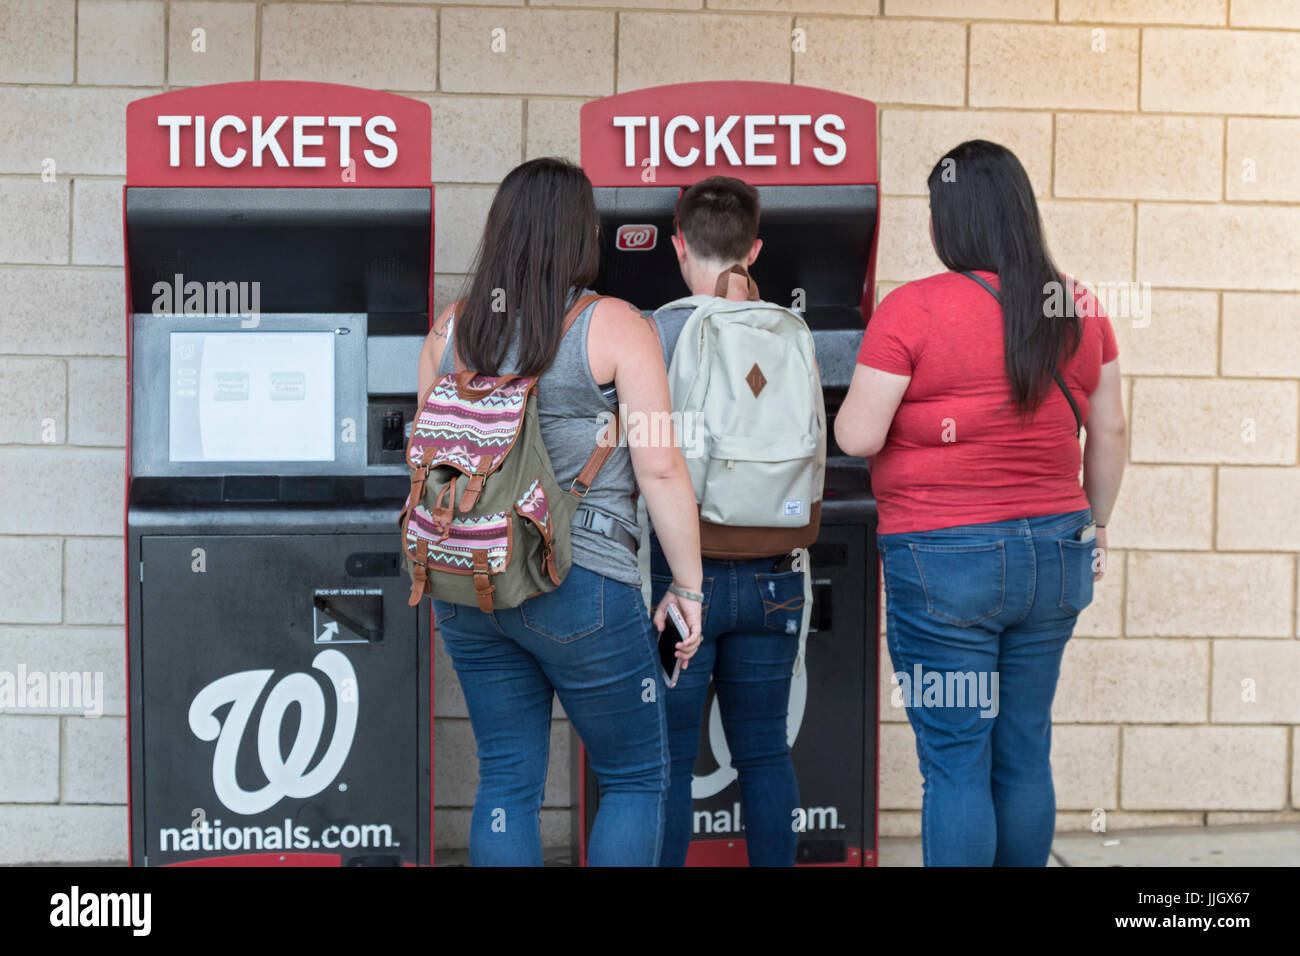 Washington, DC - Baseball fans buy tickets for a Washington Nationals game from an automated ticket machine at Nationals - Stock Image